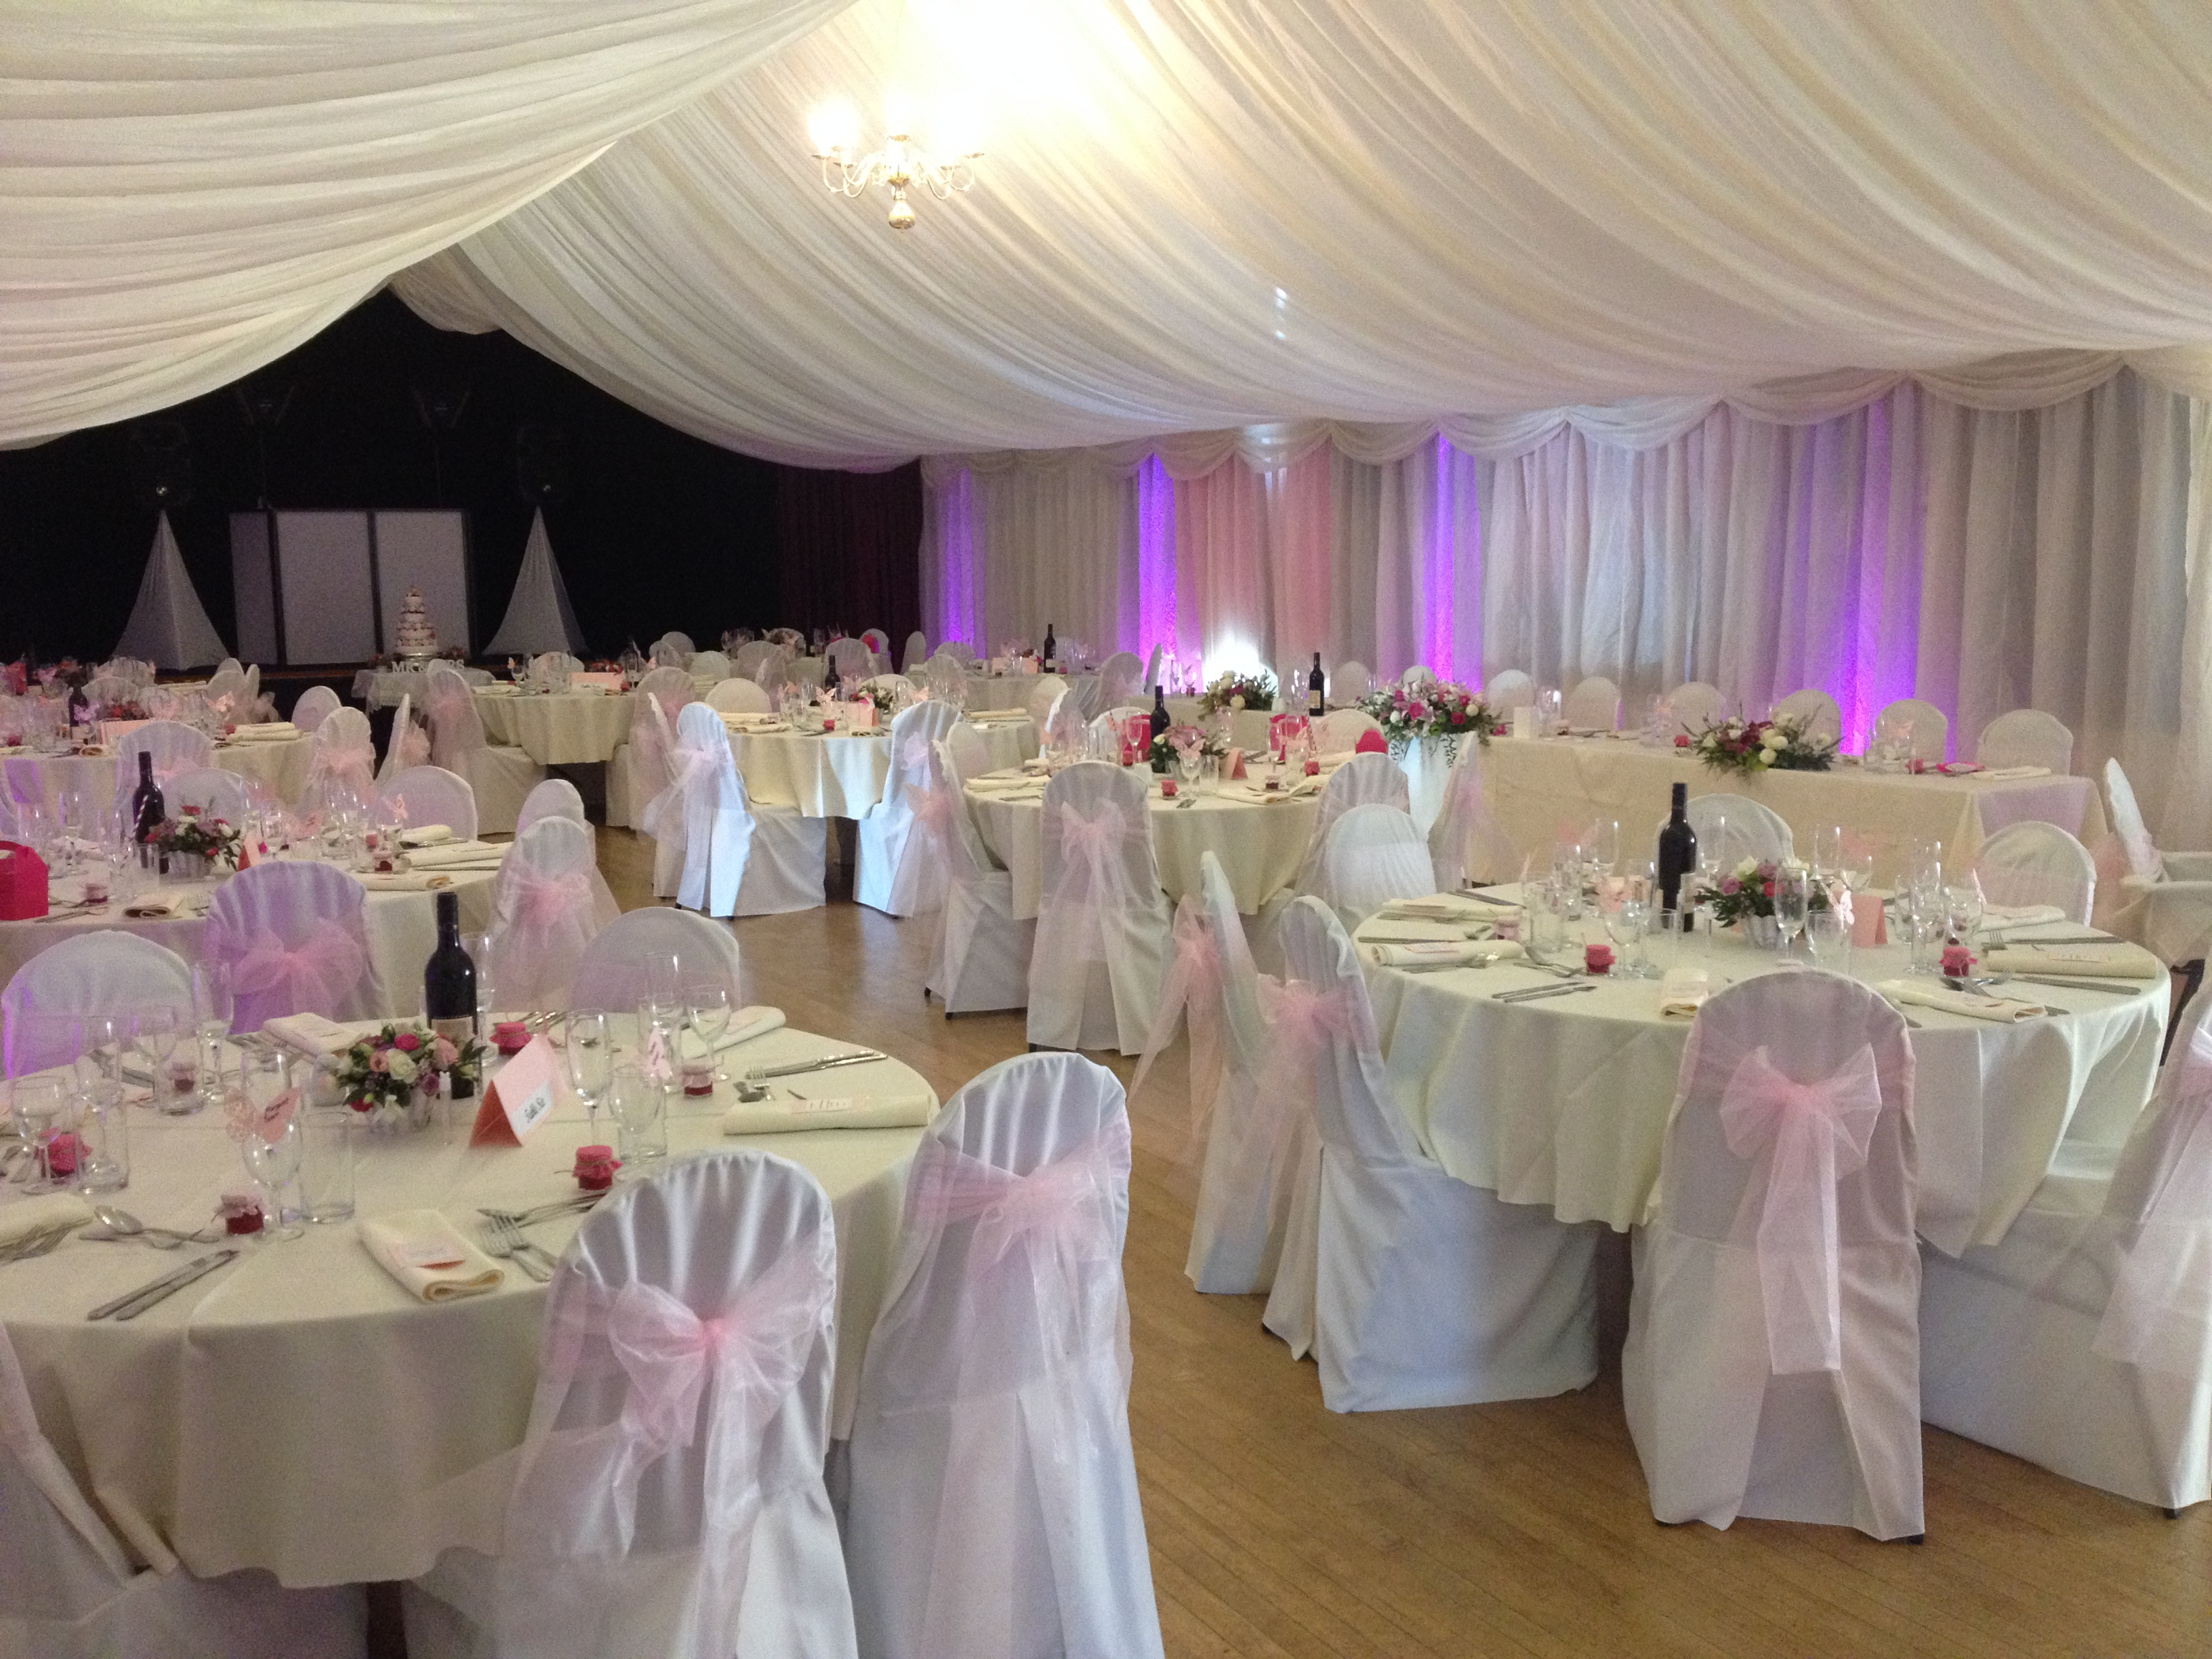 Ashover Parish Hall Events Centre decorated for Phil and Harriet's wedding